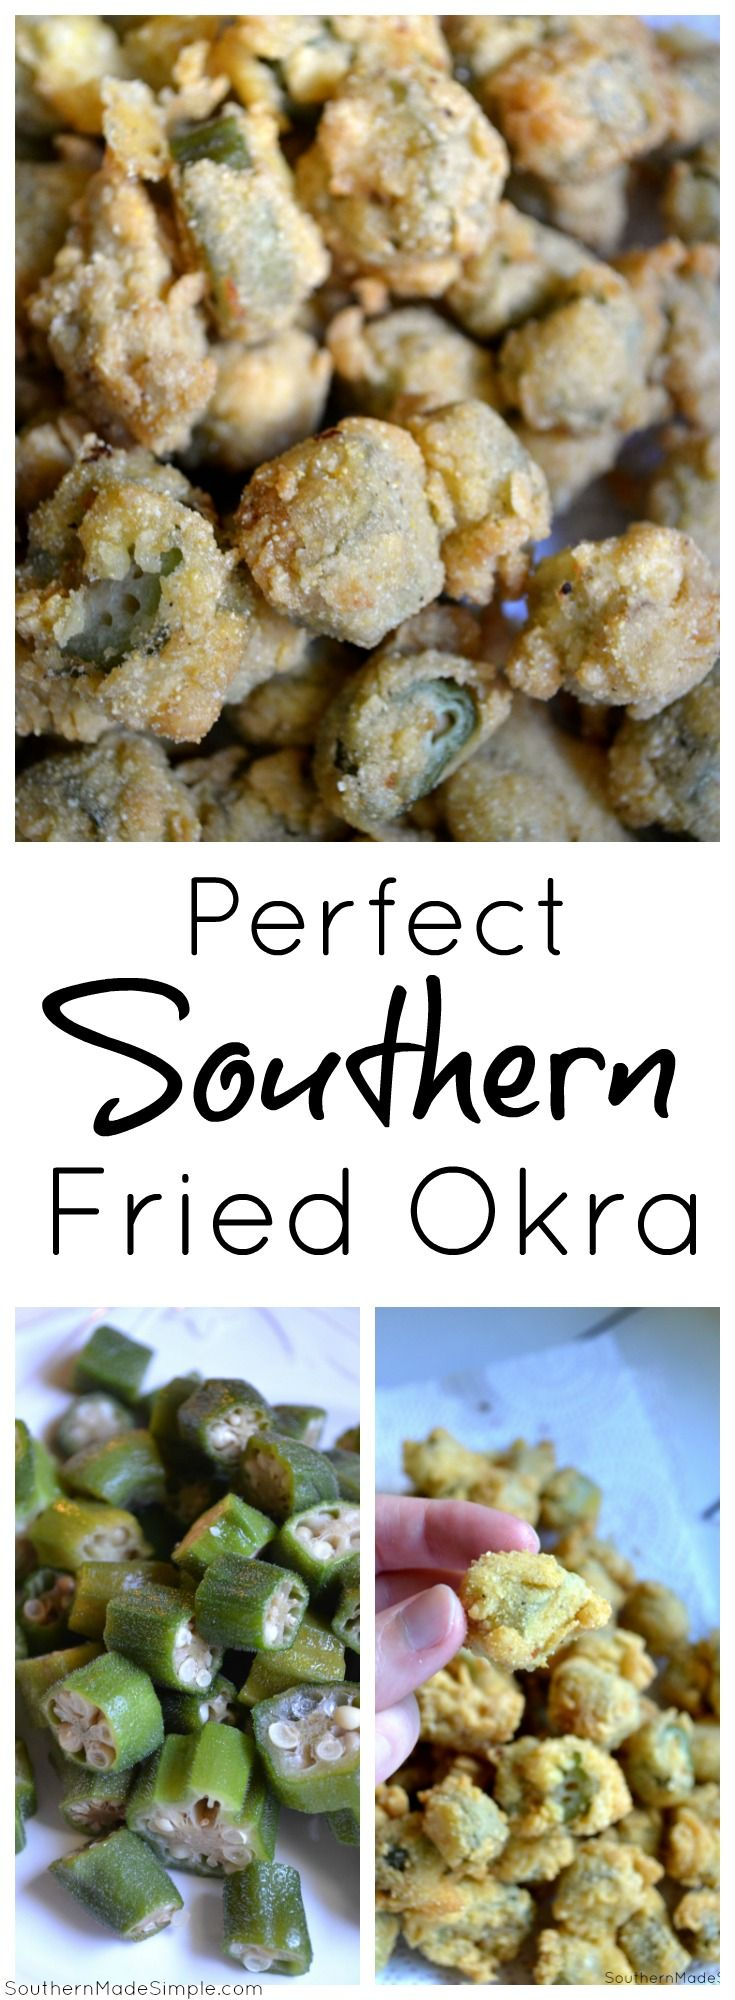 How to make a perfect batch of southern fried okra - so crispy and delicious!